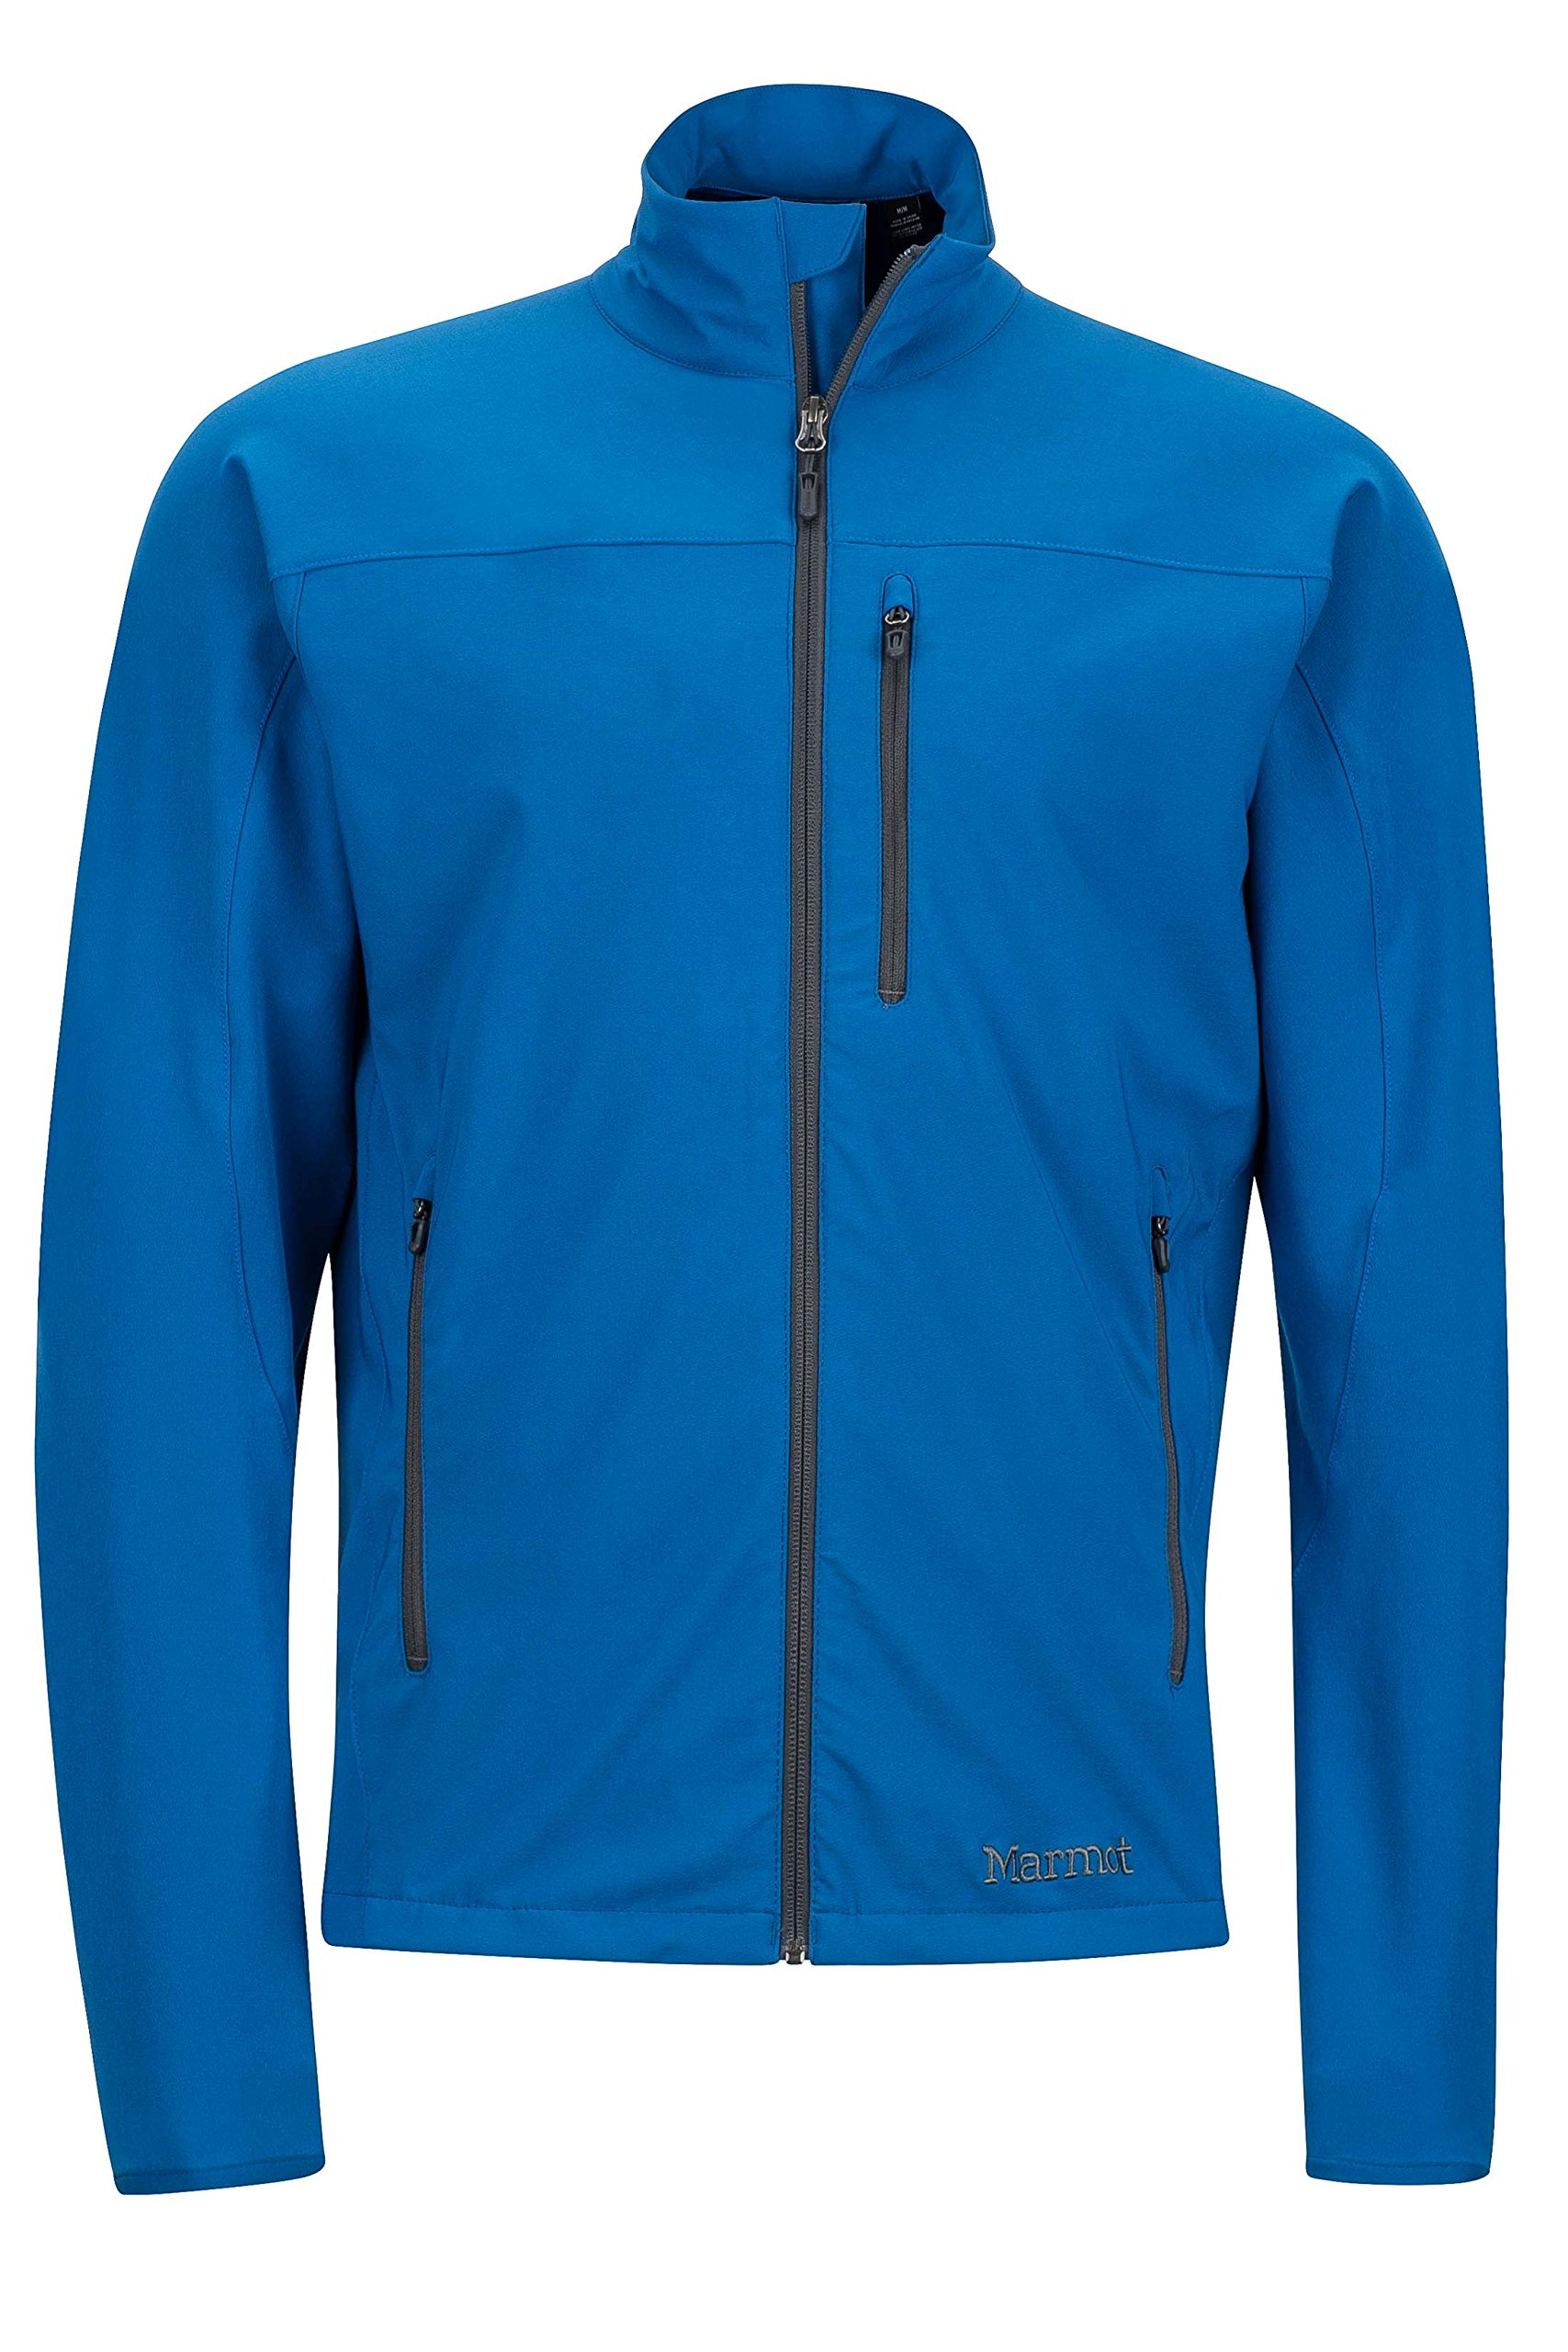 Marmot Tempo Men's Softshell Jacket, Blue Sapphire, Large by Marmot